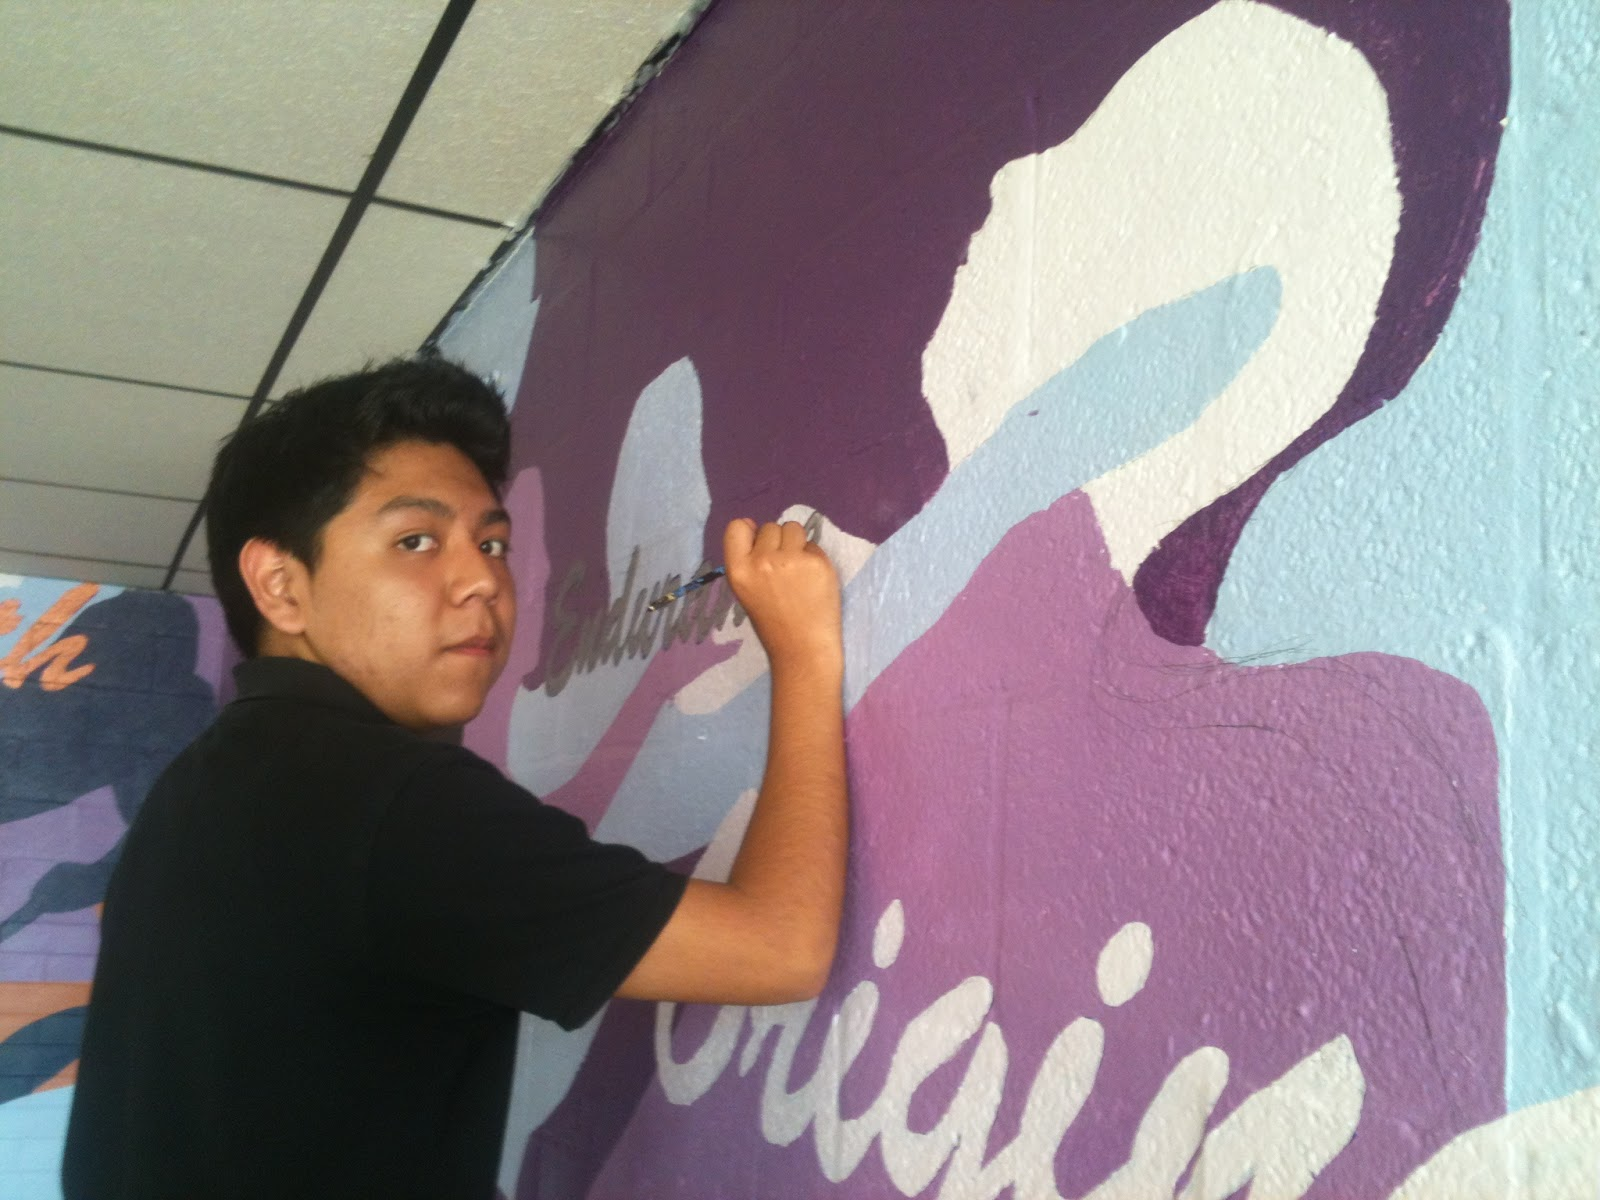 Culture Keepers: Culture Keepers Mural Complete at CVPA ...